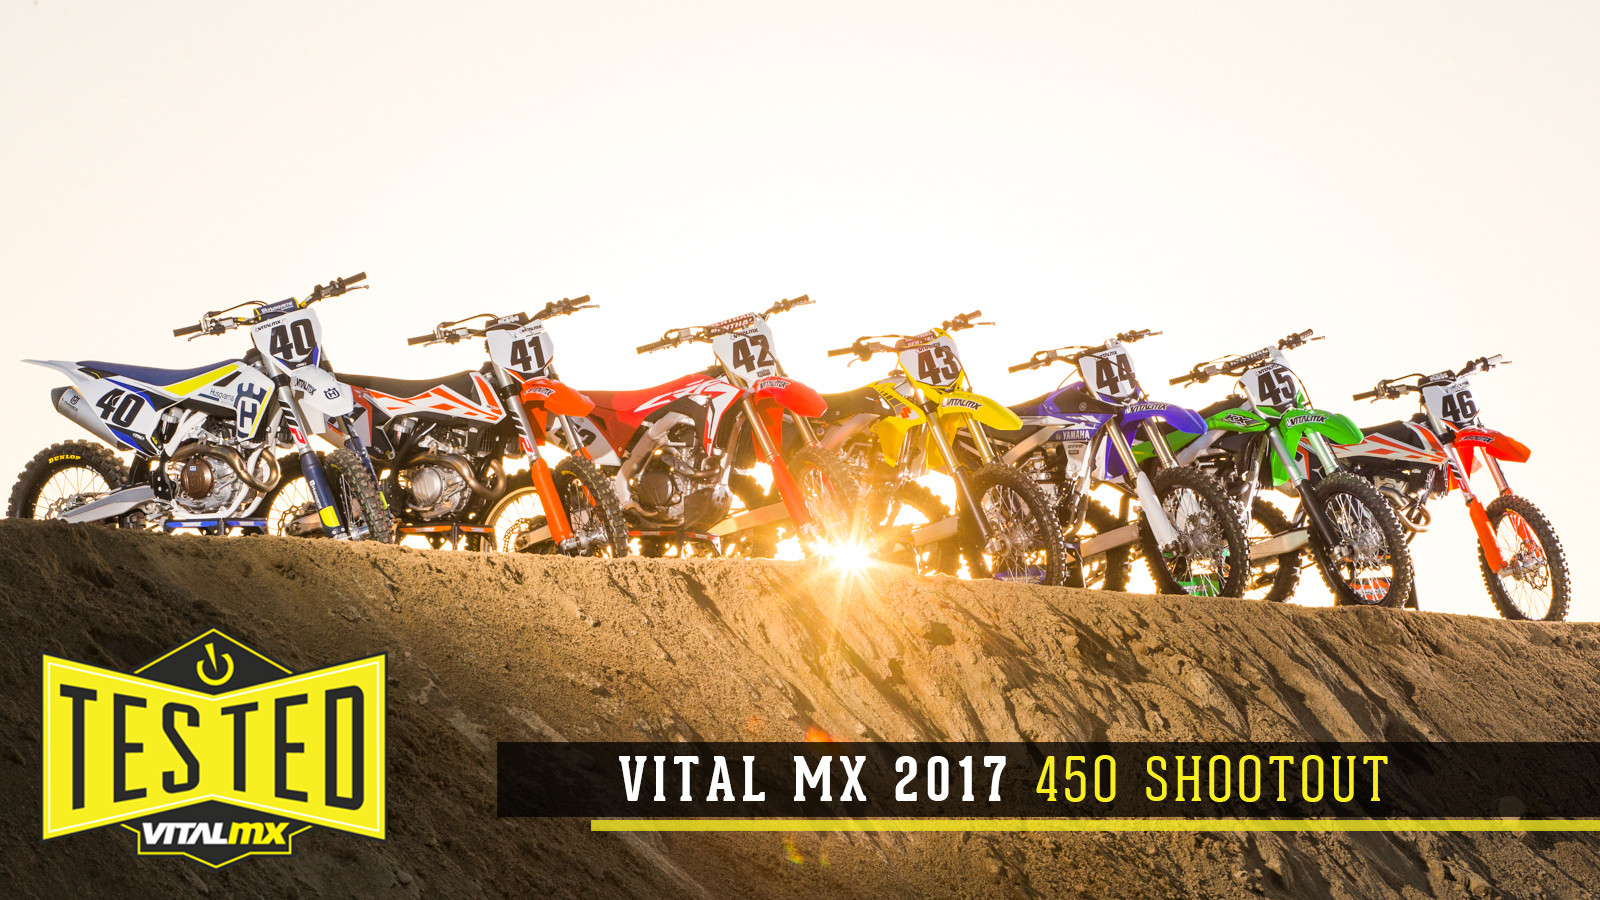 2017 Vital MX 450 Shootout - Motocross Feature Stories